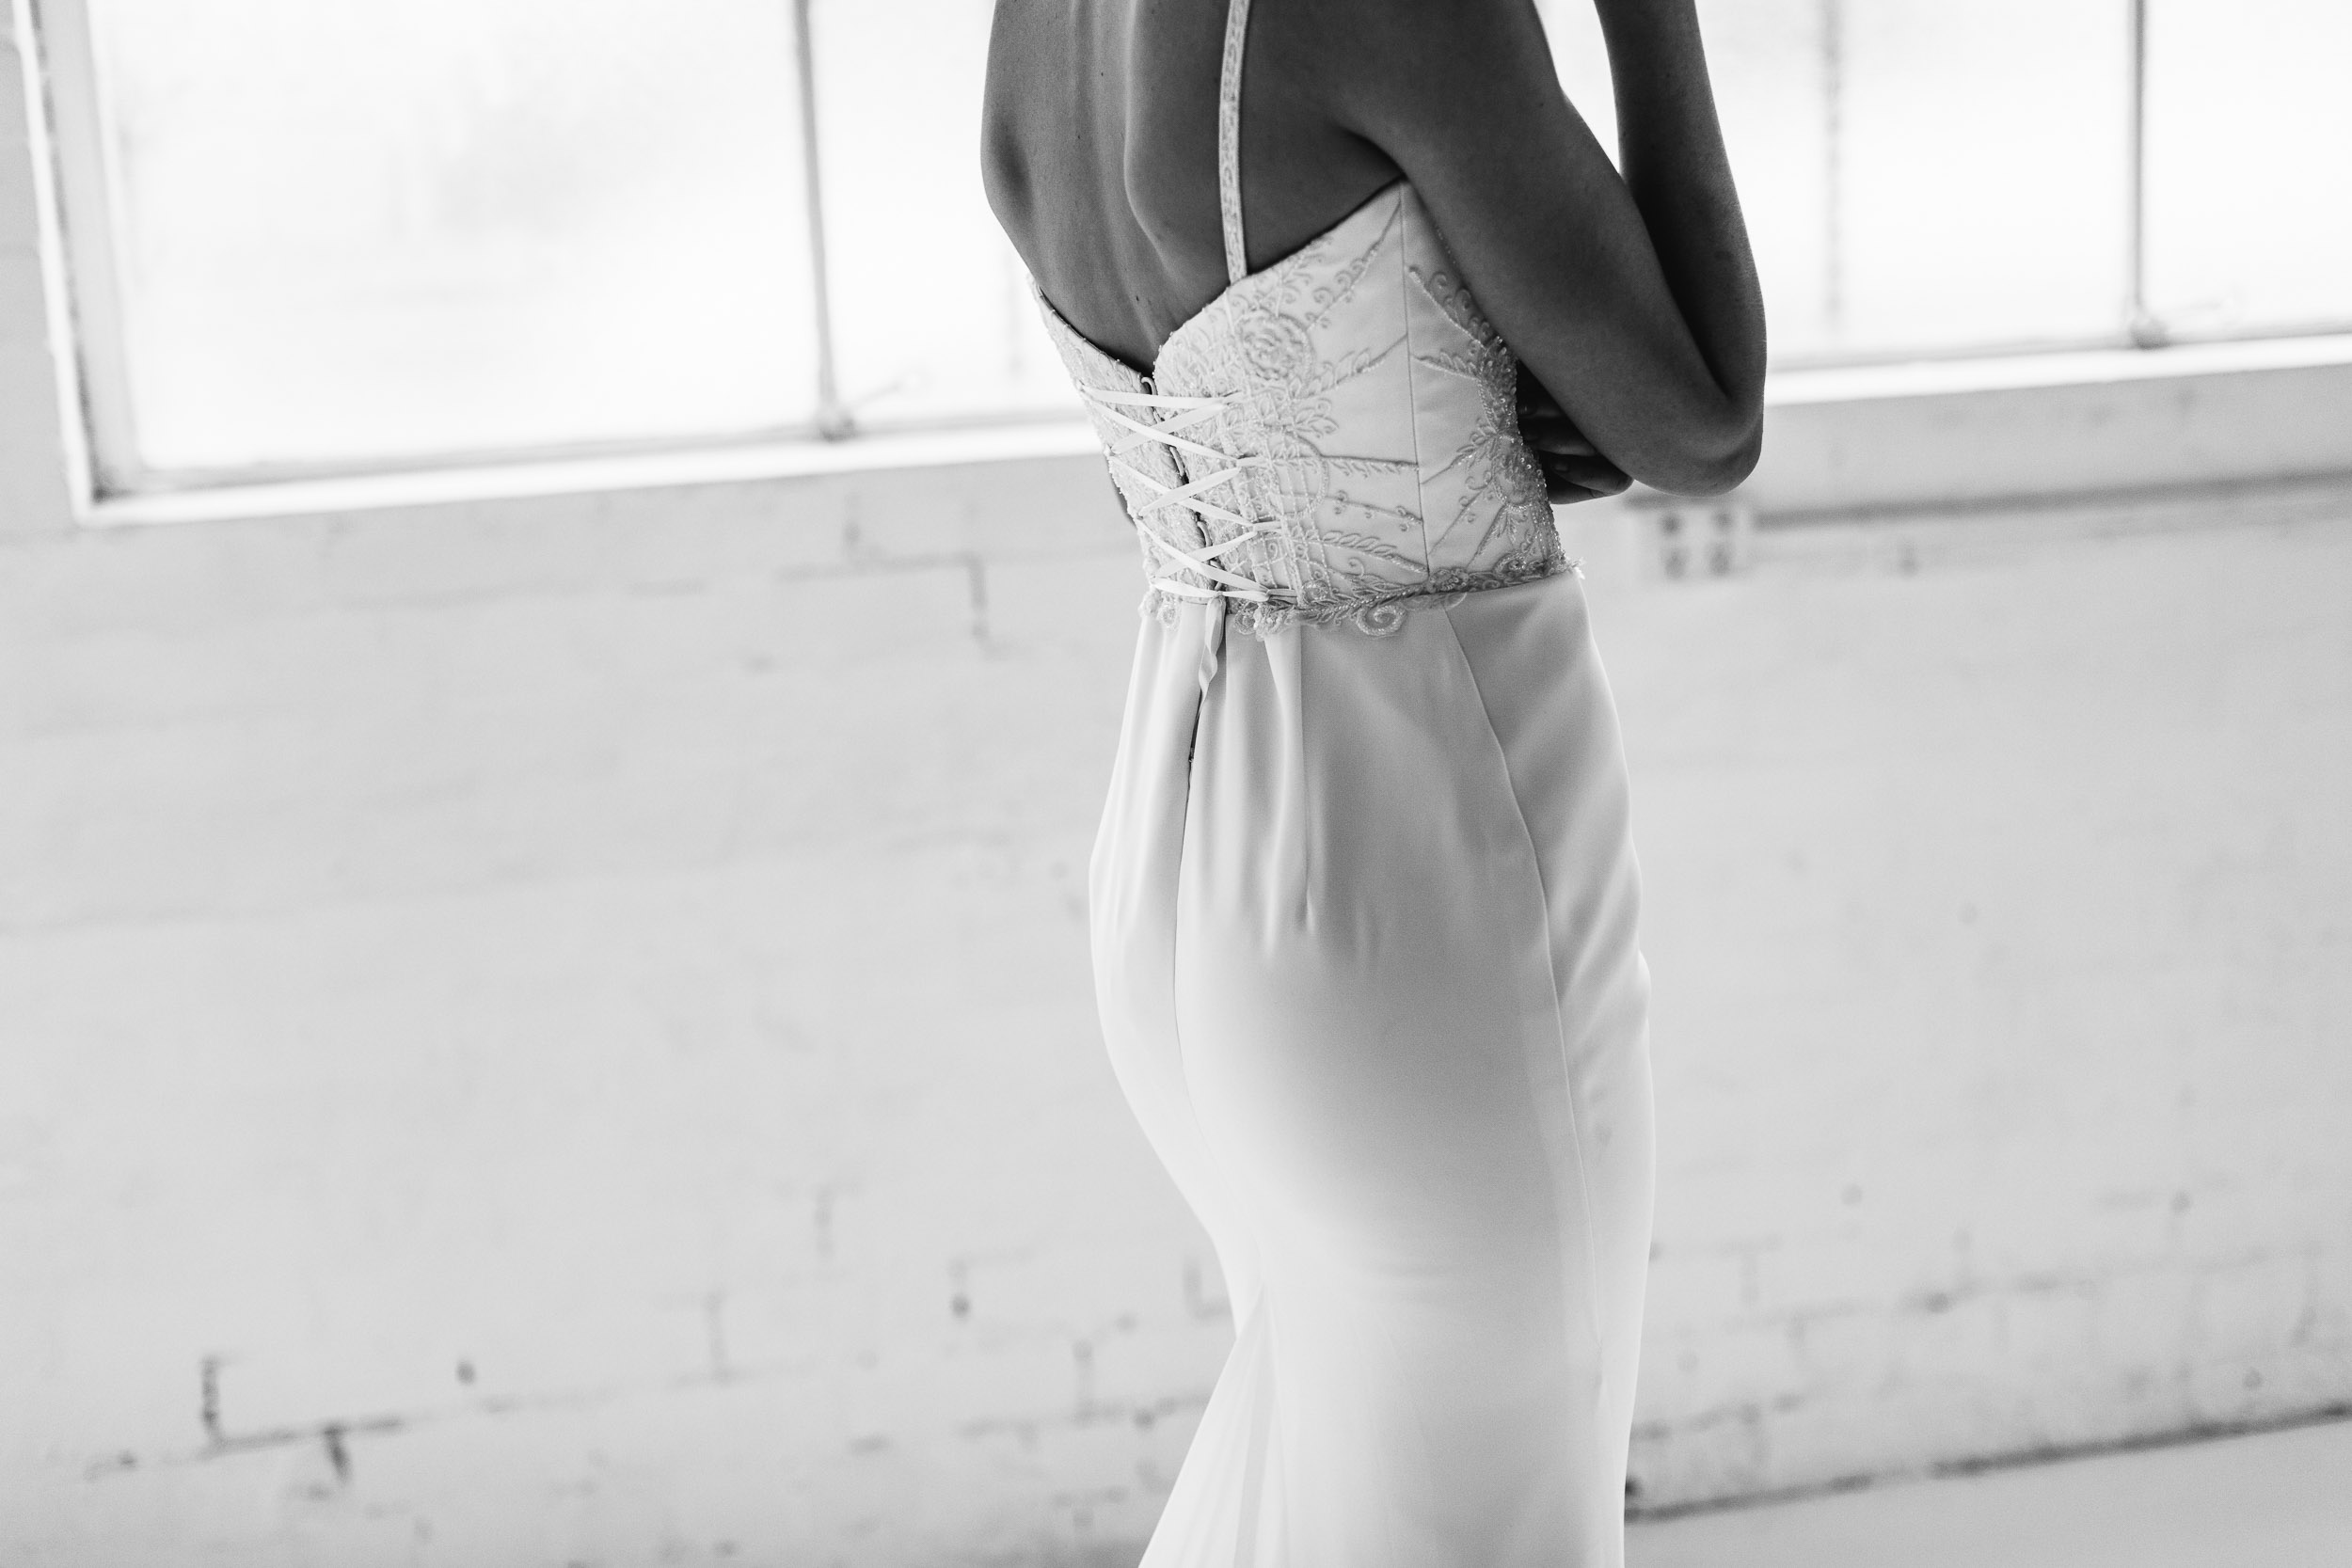 Kas-Richards-Karen-Willis_Holmes-Bridal-70.jpg